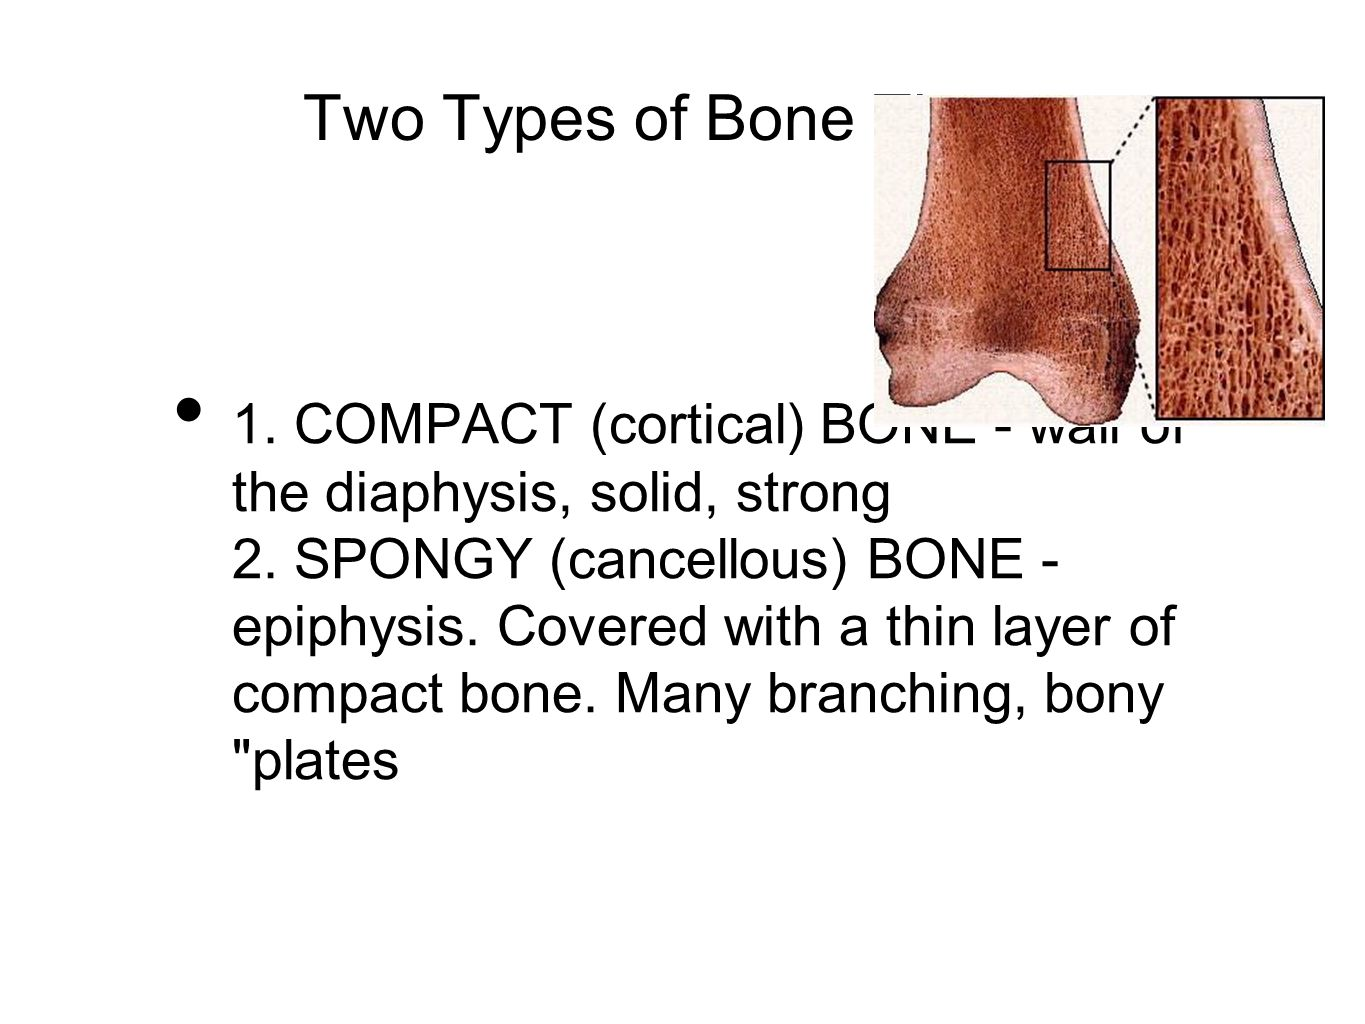 Two Types of Bone Tissue 1. COMPACT (cortical) BONE - wall of the diaphysis, solid, strong 2. SPONGY (cancellous) BONE - epiphysis. Covered with a thi